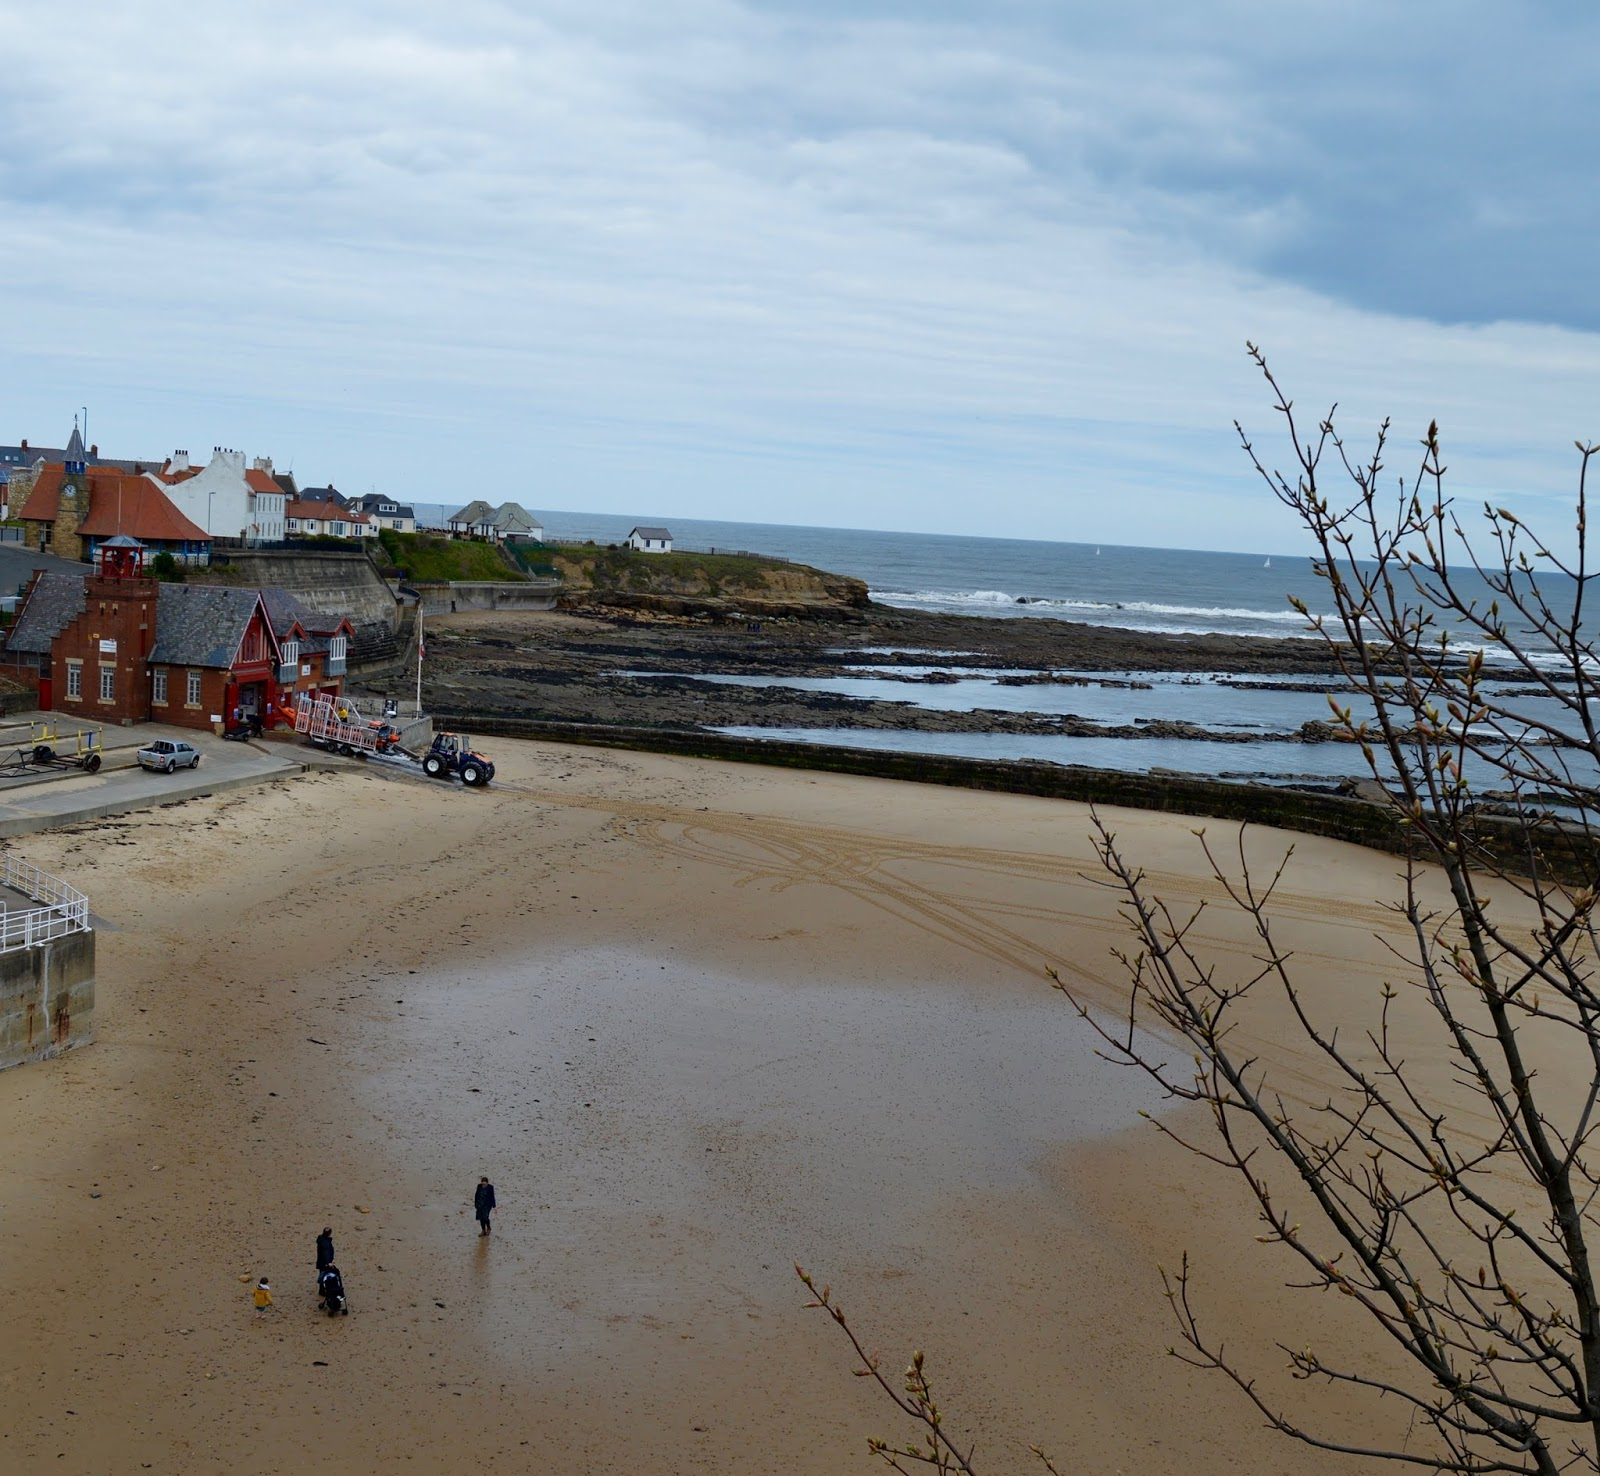 The Seasider Open Top Bus Tour Whitley Bay | Tickets, Prices, Timetables & Where To Visit - Cullercoats beach